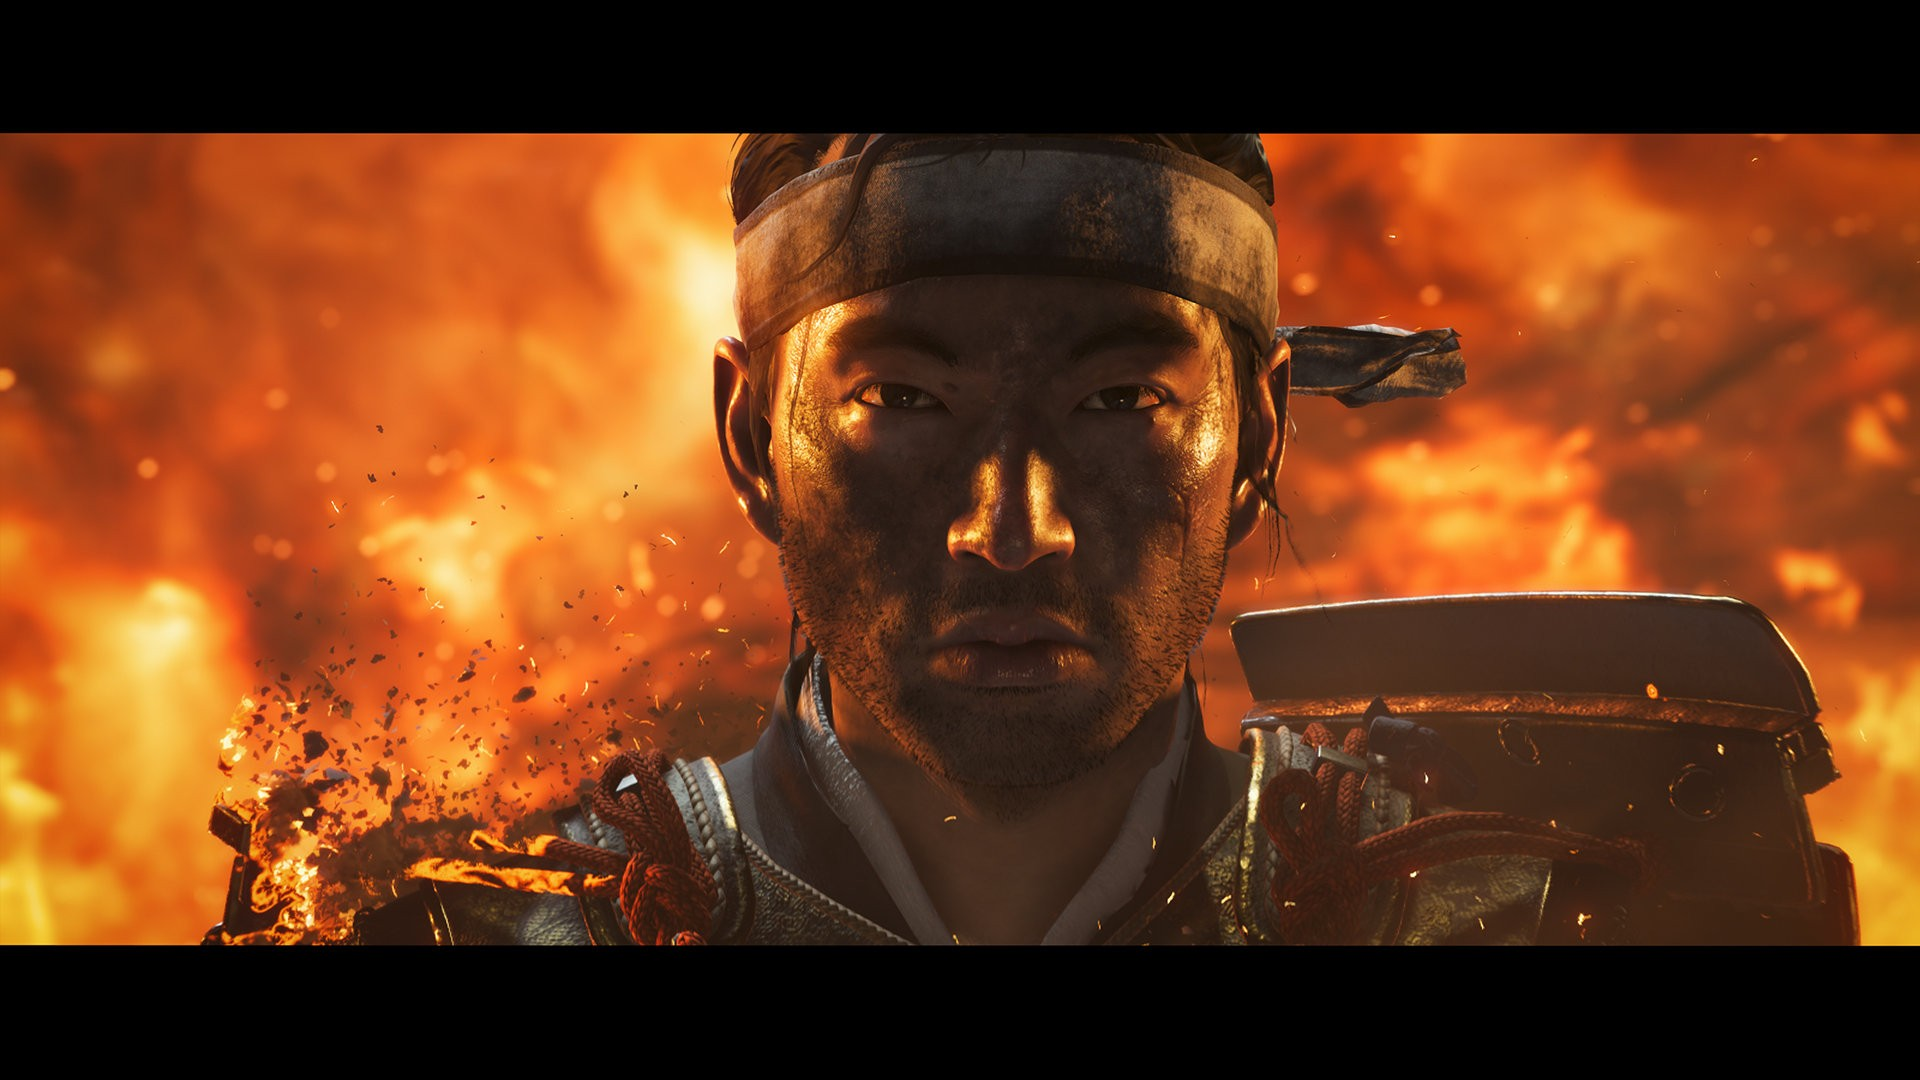 News – Ghost of Tsushima: i samurai arrivano in esclusiva su PlayStation 4